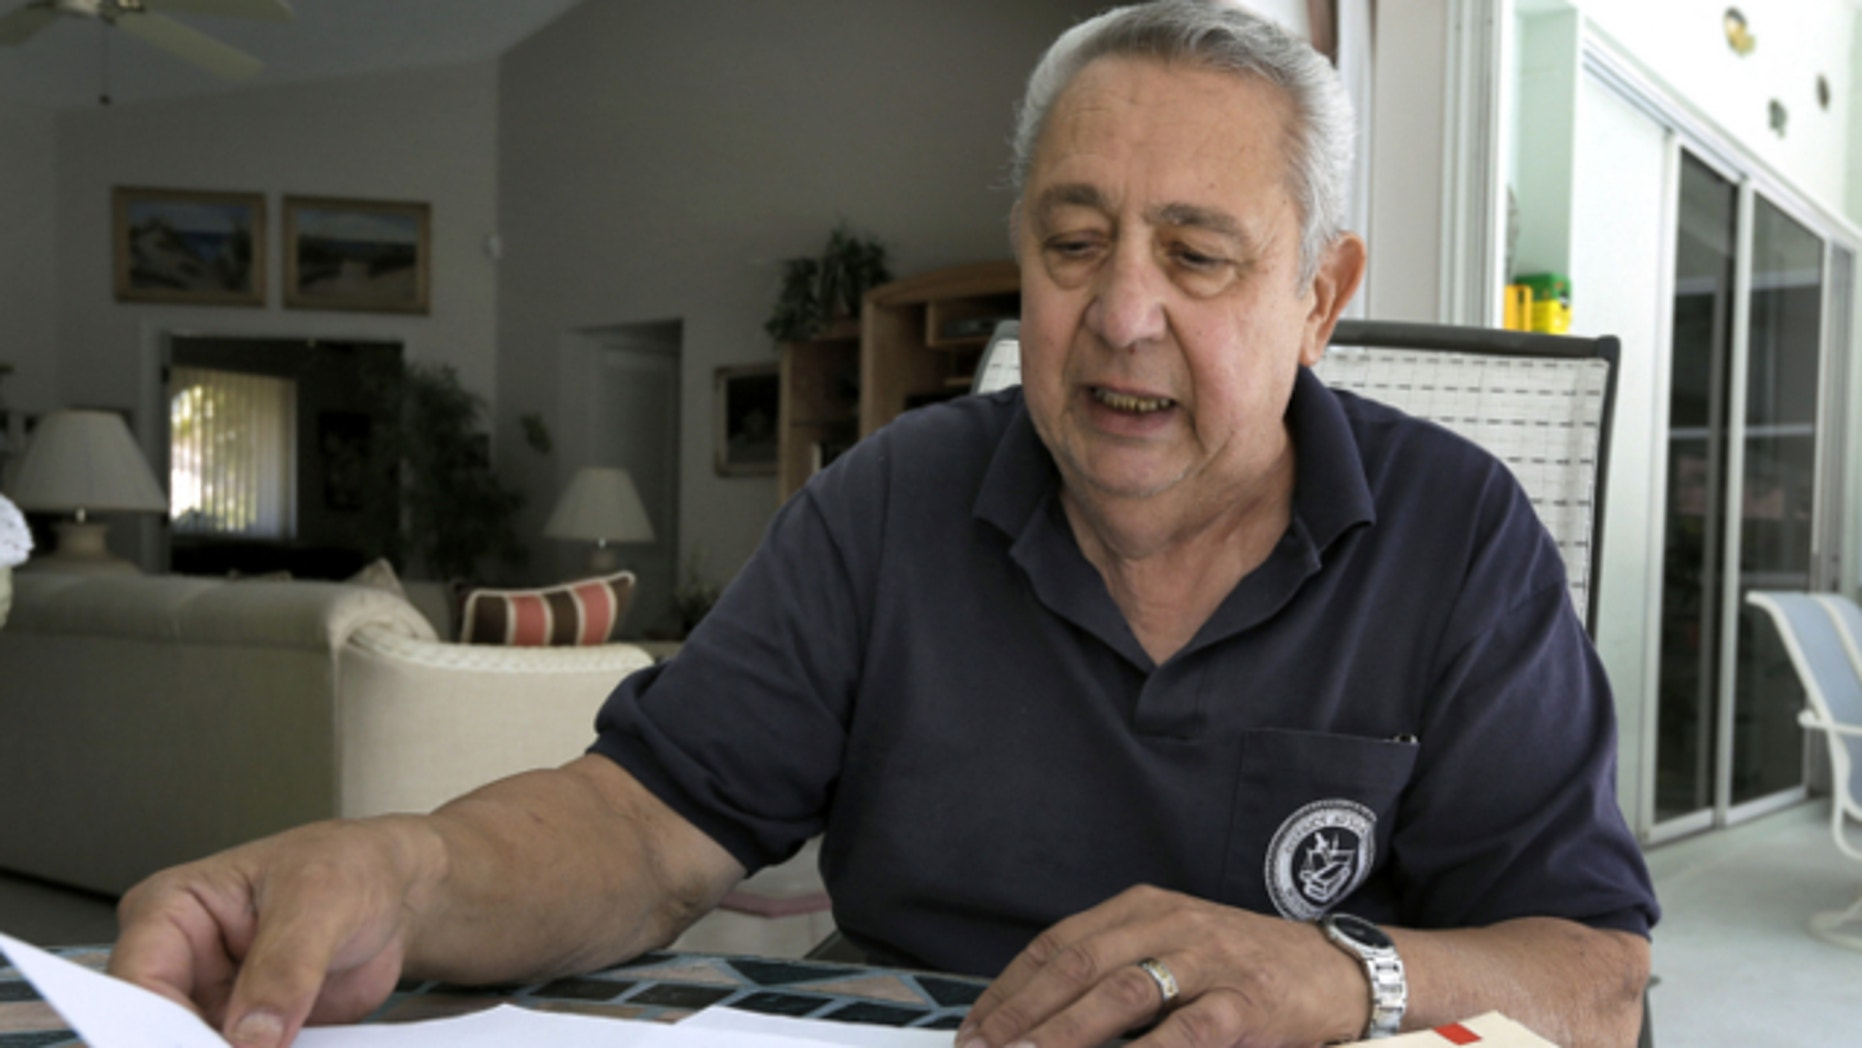 March 21, 2013: Tom Gervasi looks over some his Department of Veterans Affairs rejection letters in Sarasota, Fla.